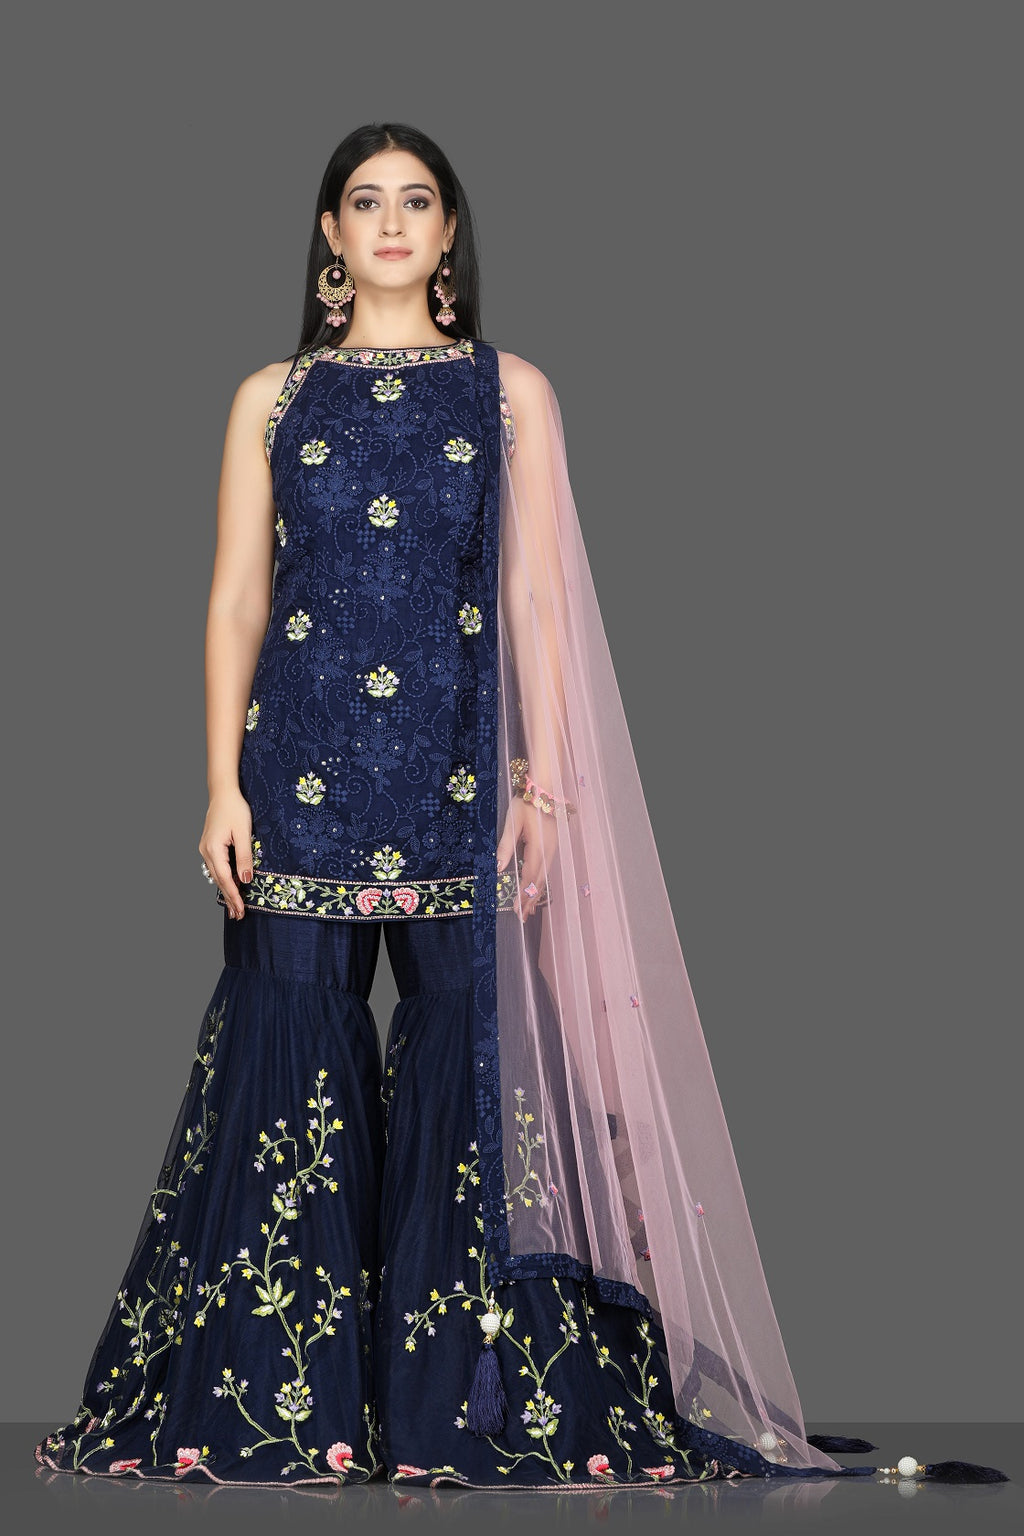 Buy beautiful navy blue embroidered georgette Lucknowi garara suit online in USA with pink dupatta. Flaunt ethnic fashion with exquisite designer lehenga, Indian wedding dresses, Anarkali suits from Pure Elegance Indian fashion boutique in USA.-full view